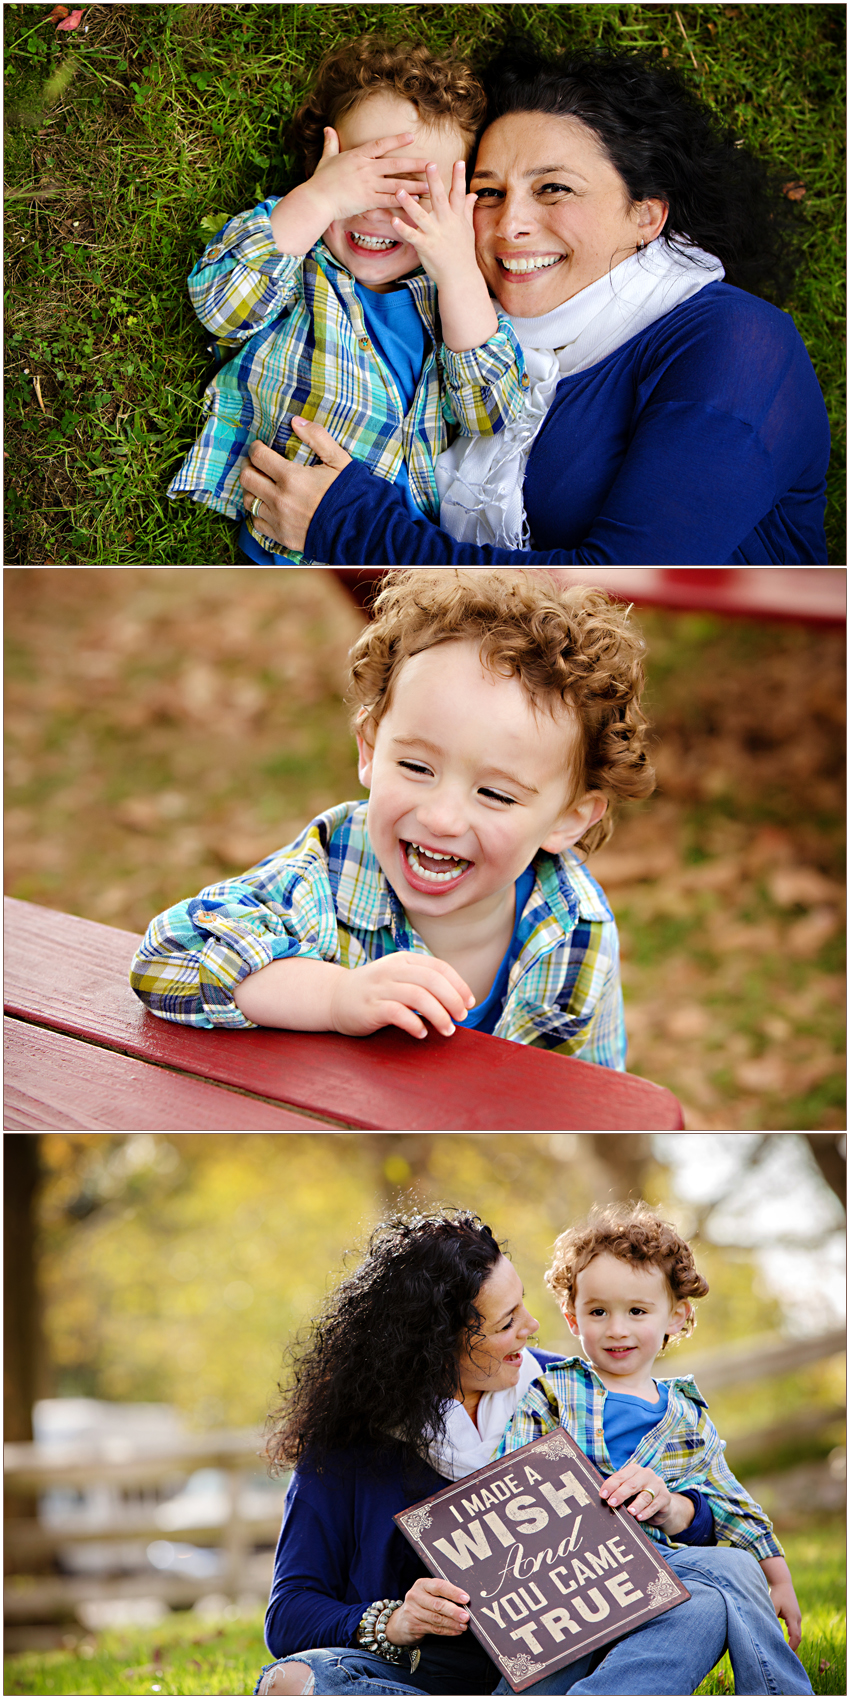 Charlotte Child Photographer Carolyn Ann Ryan captures adorable giggles